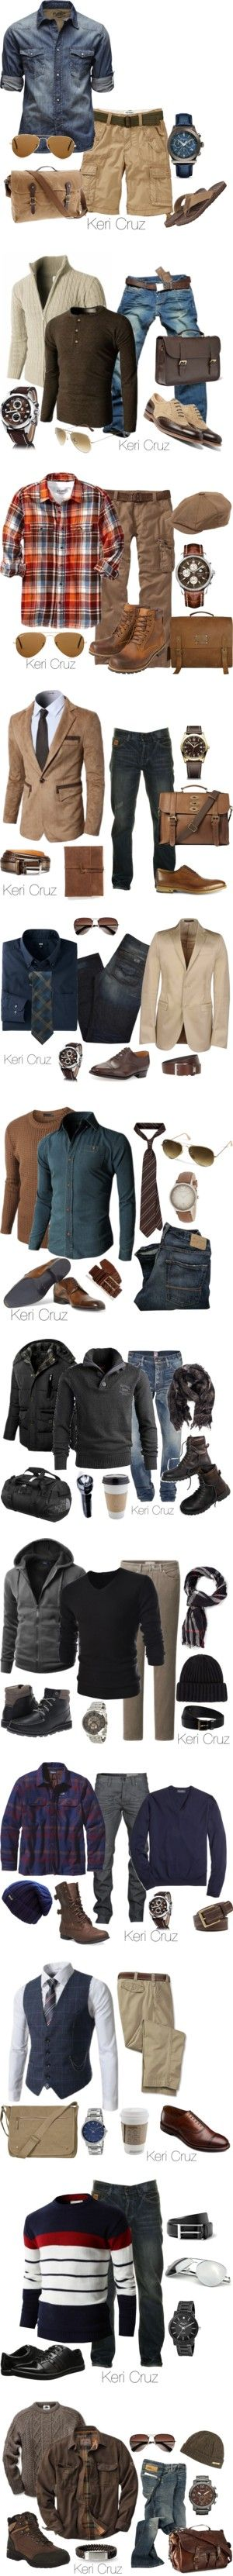 Men's Fashion Sets by Keri Cruz